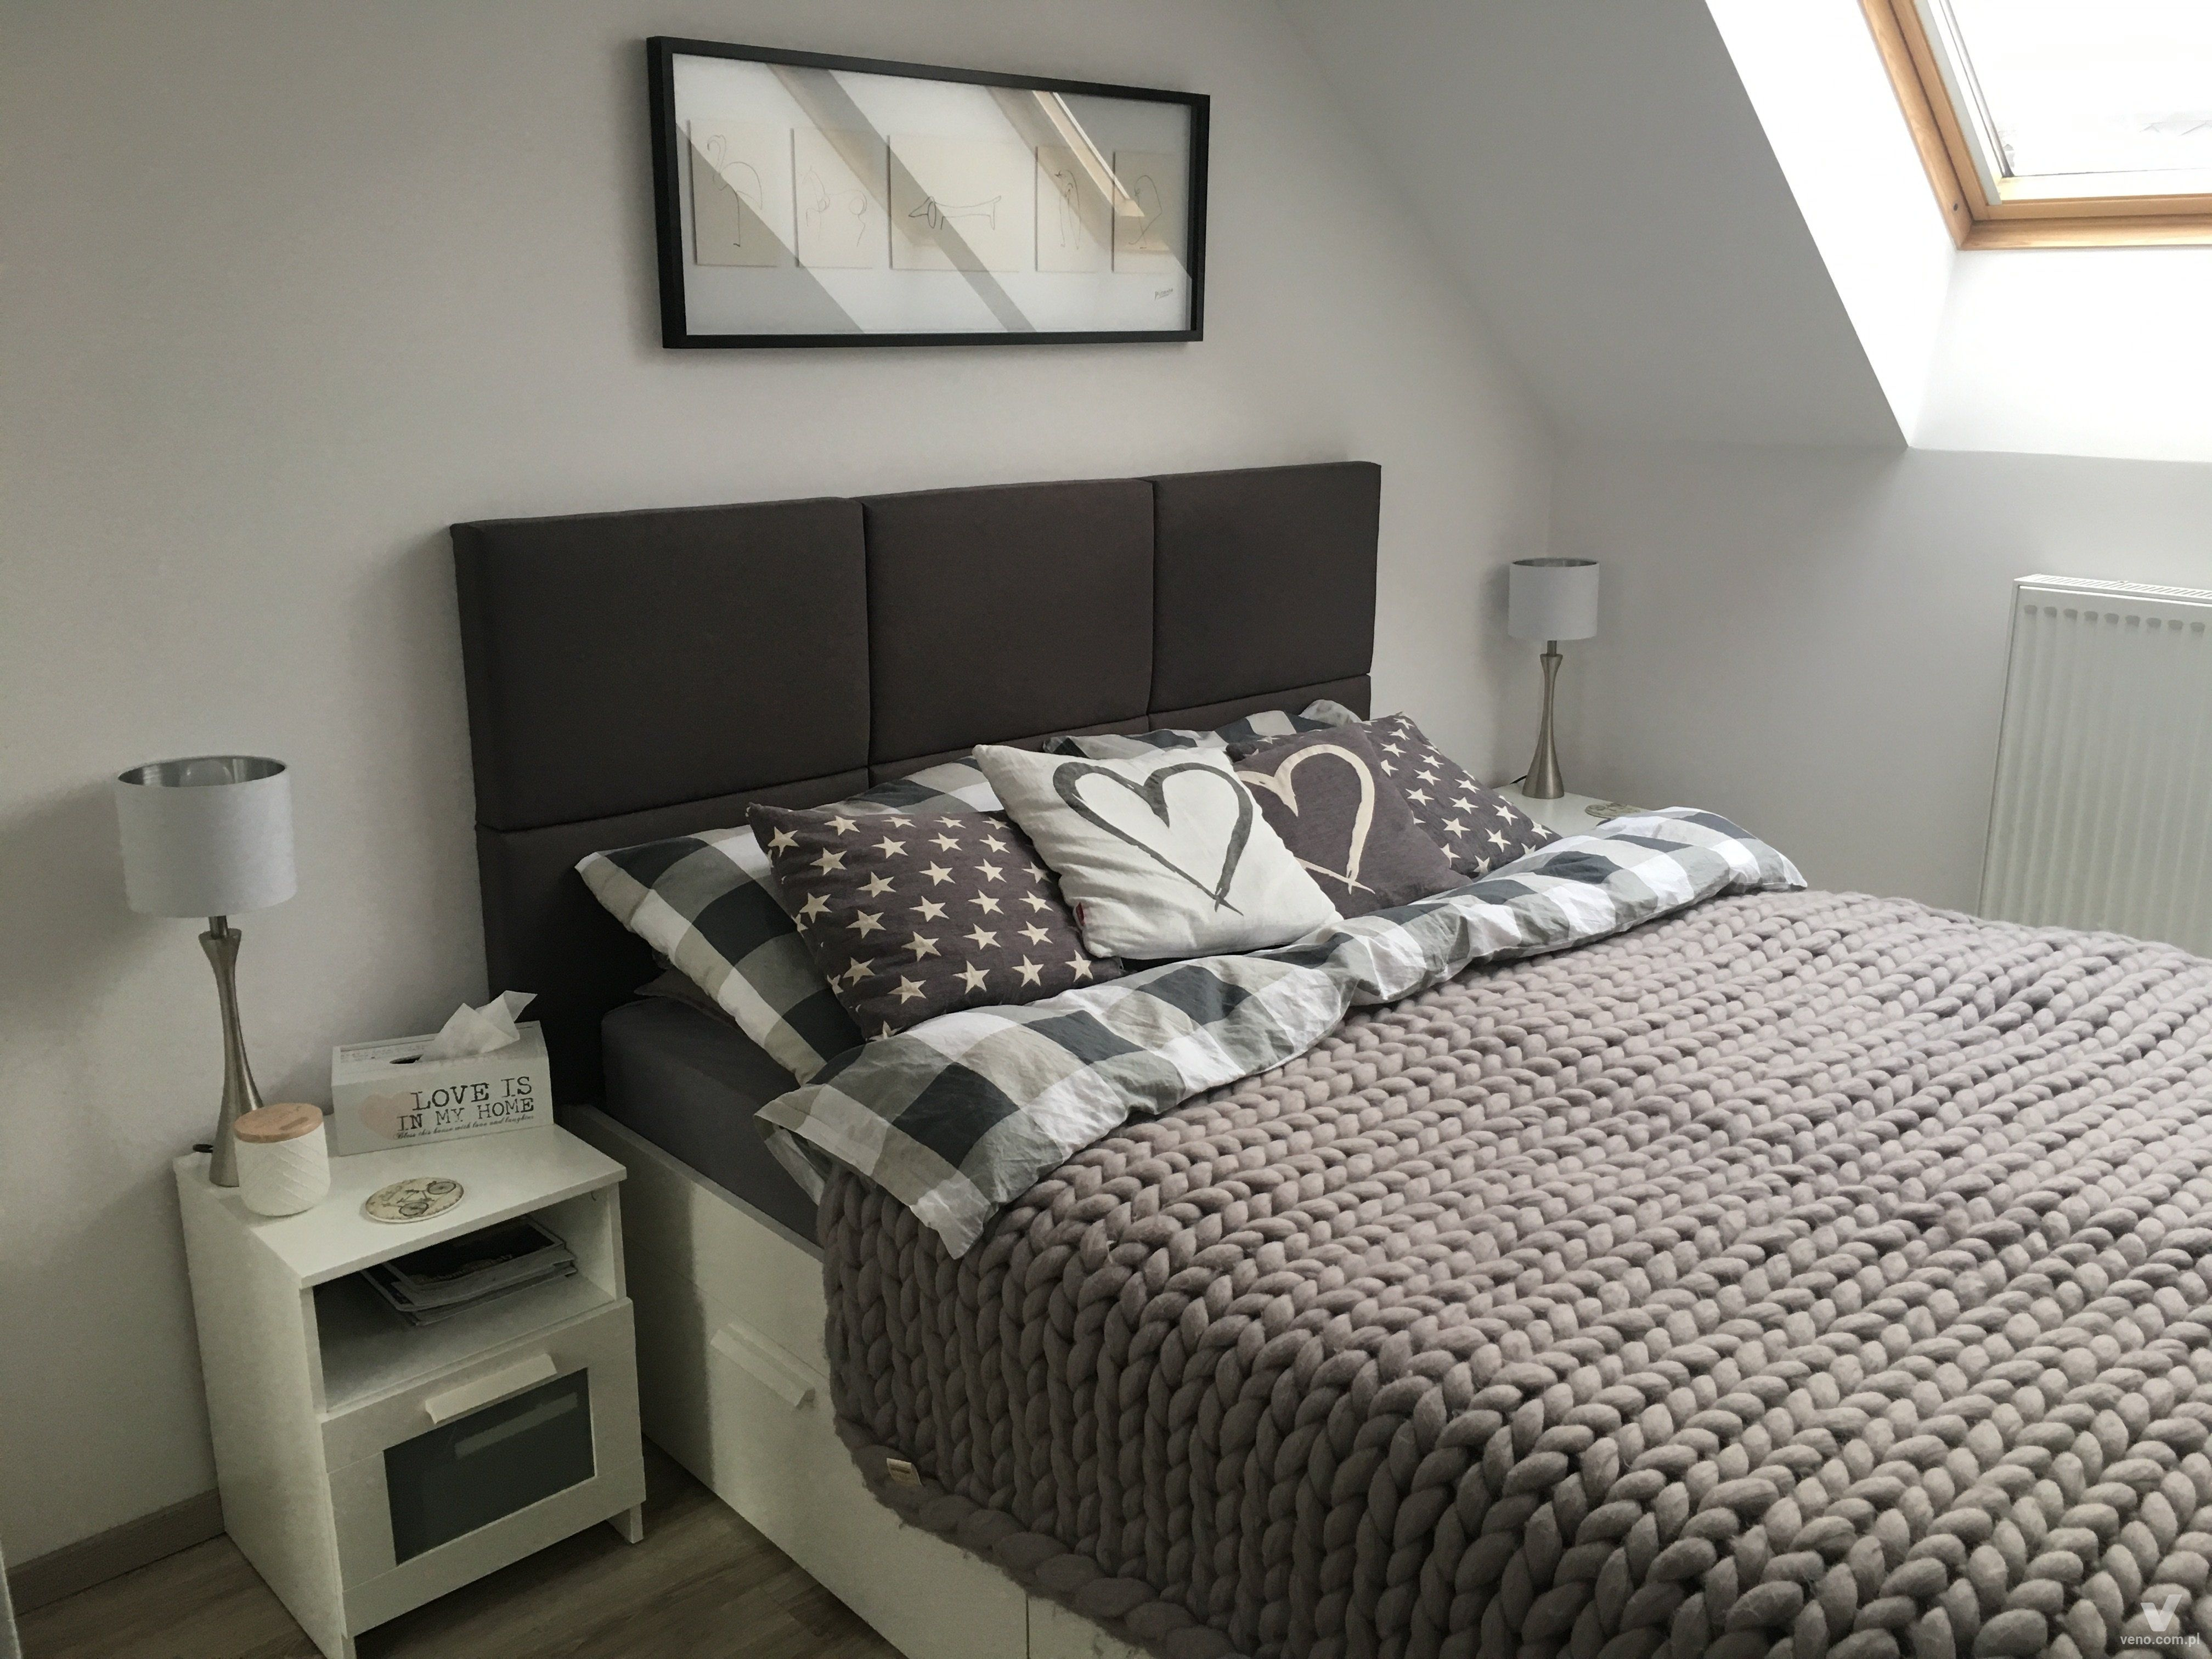 Wall Panels Upholstered In The Bedroom Veno Panele